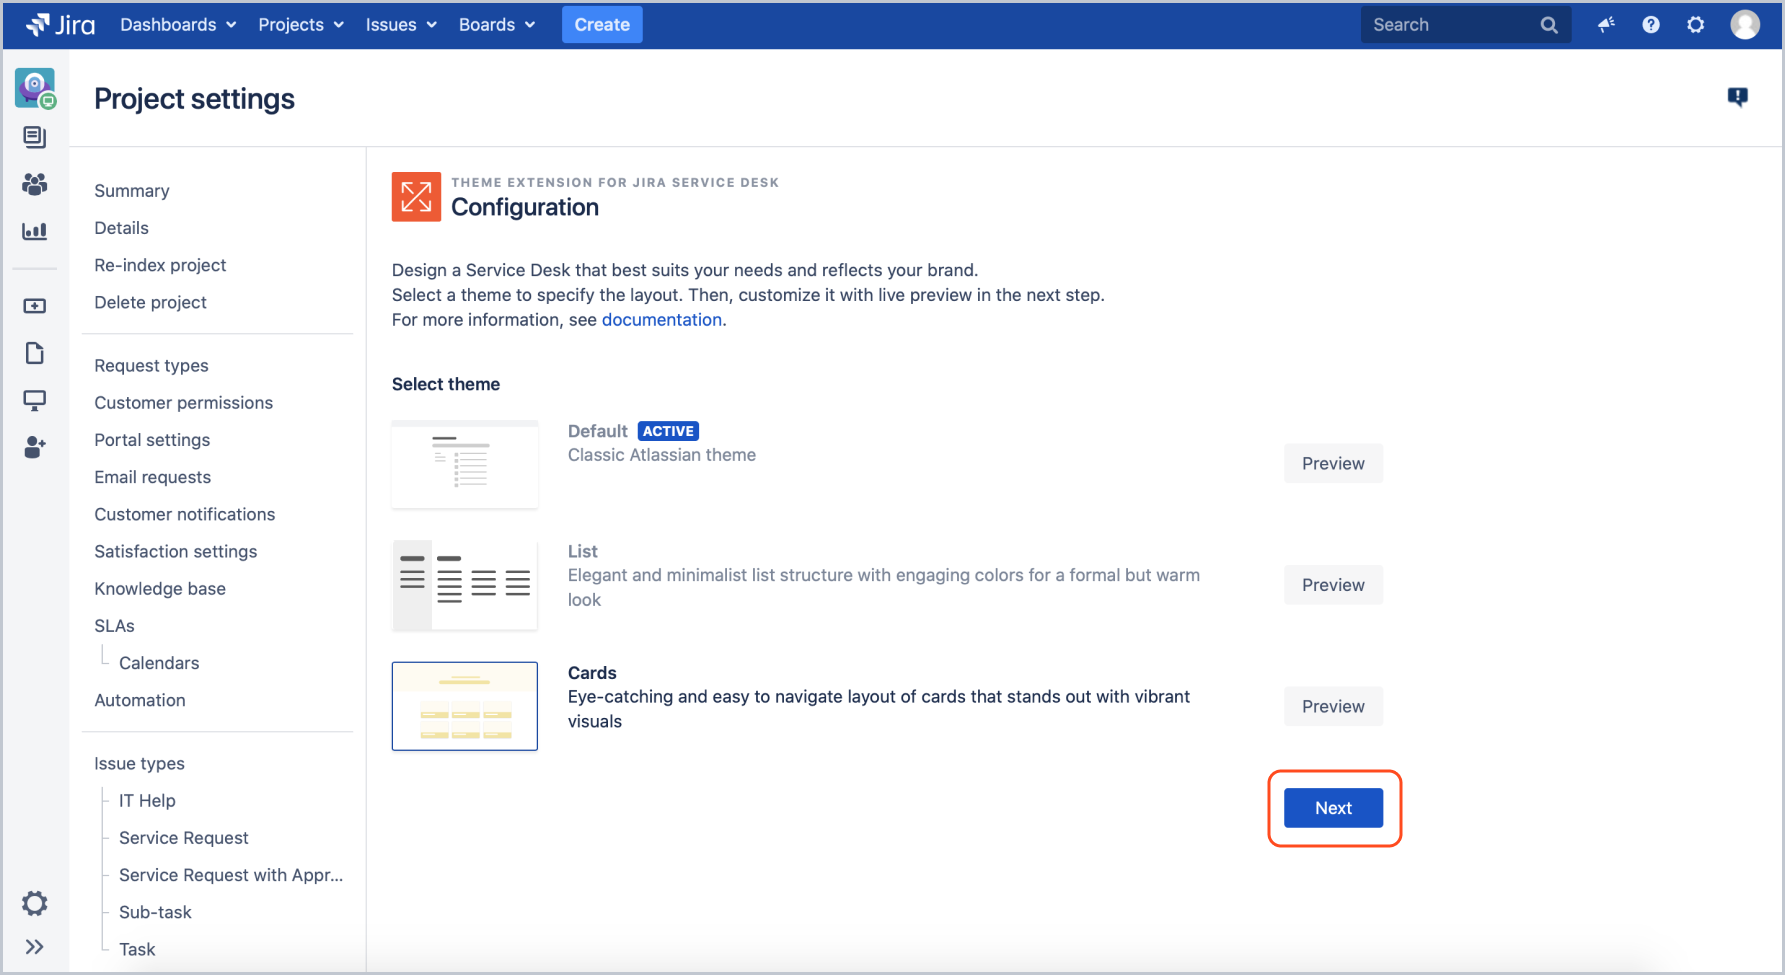 Creating a theme configuration with Theme Extension for Jira Service Desk